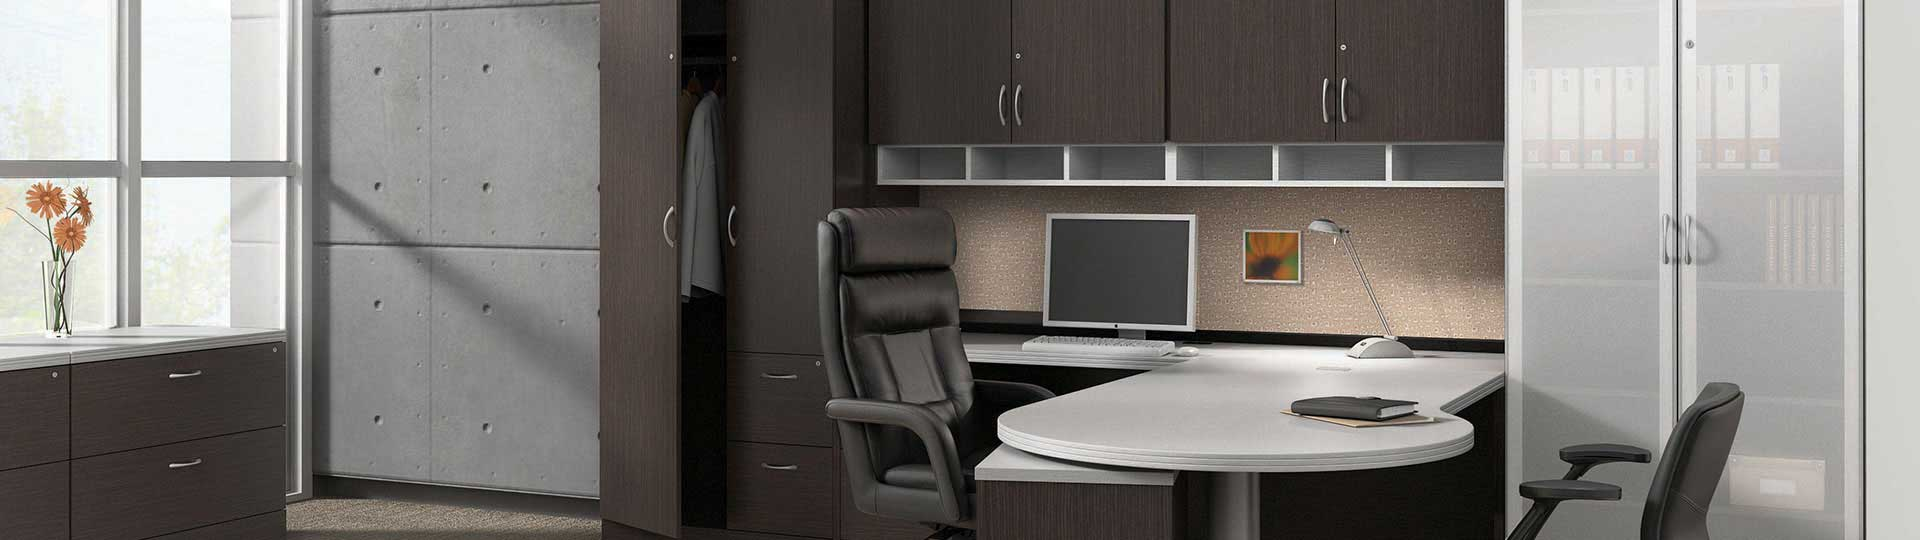 Office Furniture Liquidators Serving Businesses In Houston, TX, And The  Surrounding Areas